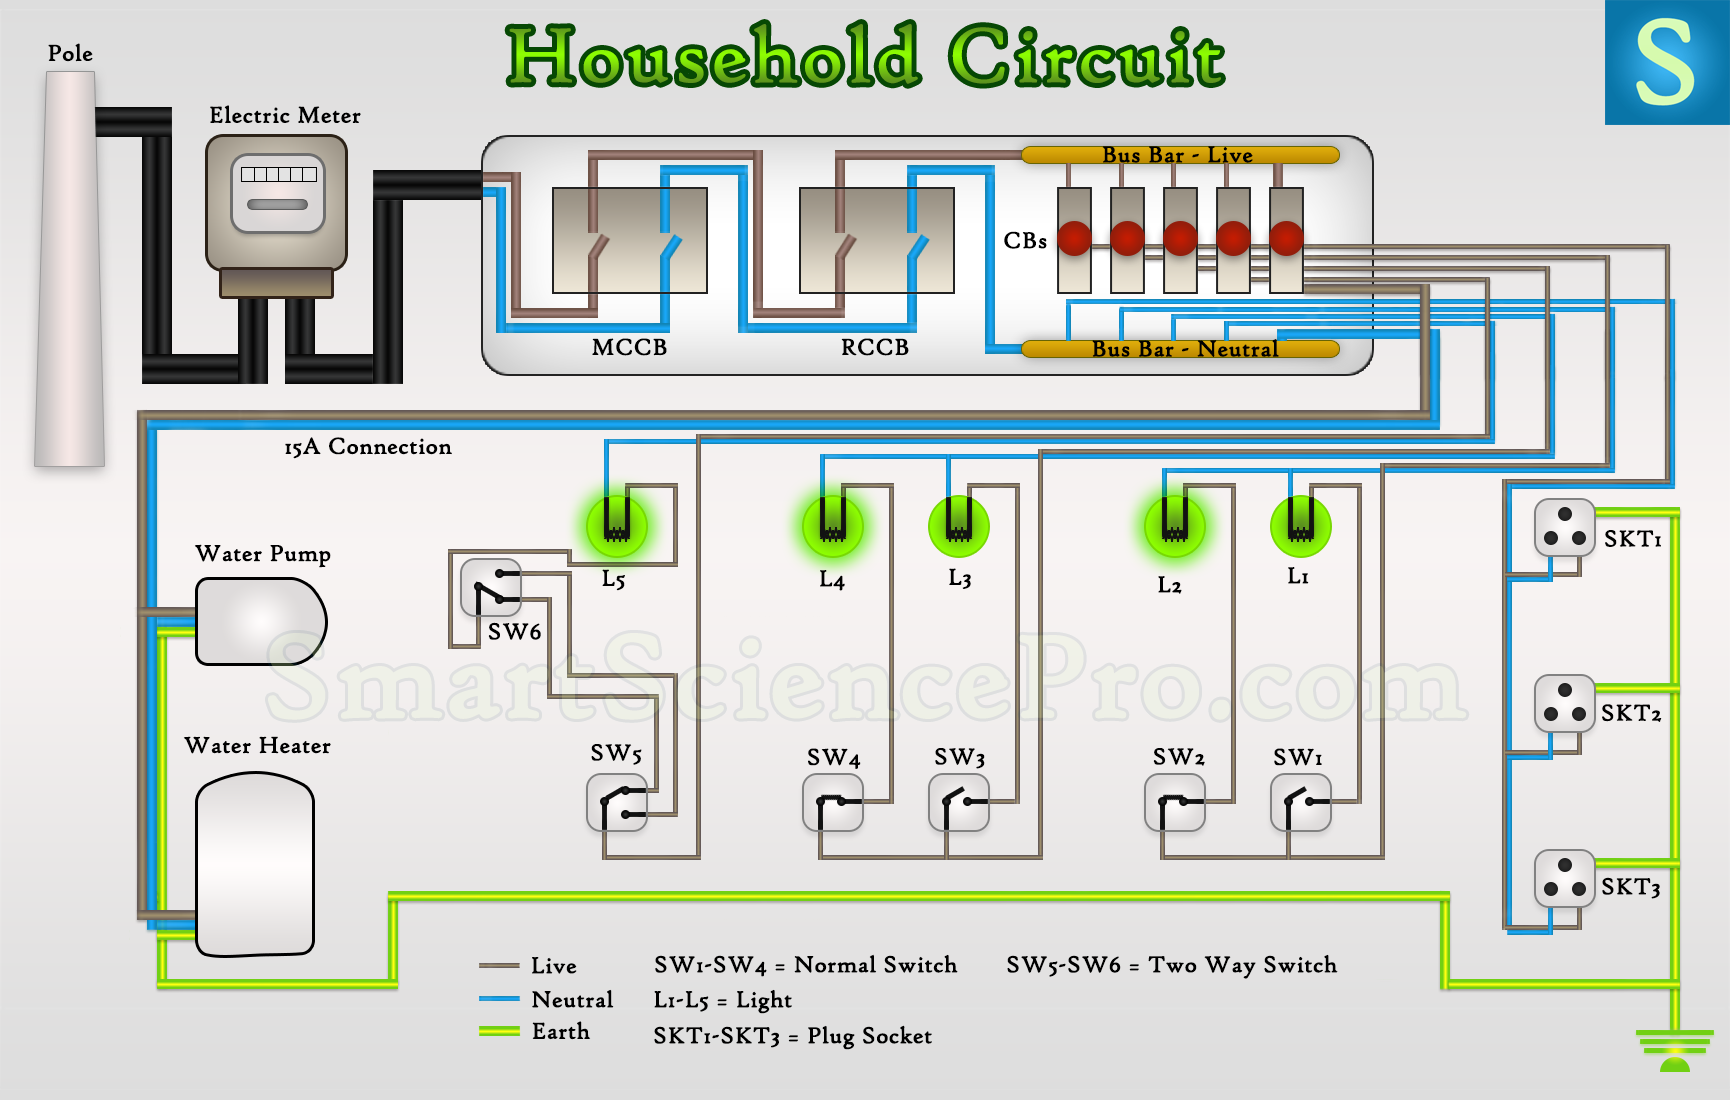 basic electrical parts & components of house wiring circuits \u2022 ssp house construction terms and definitions how basic electrical parts form the household circuit